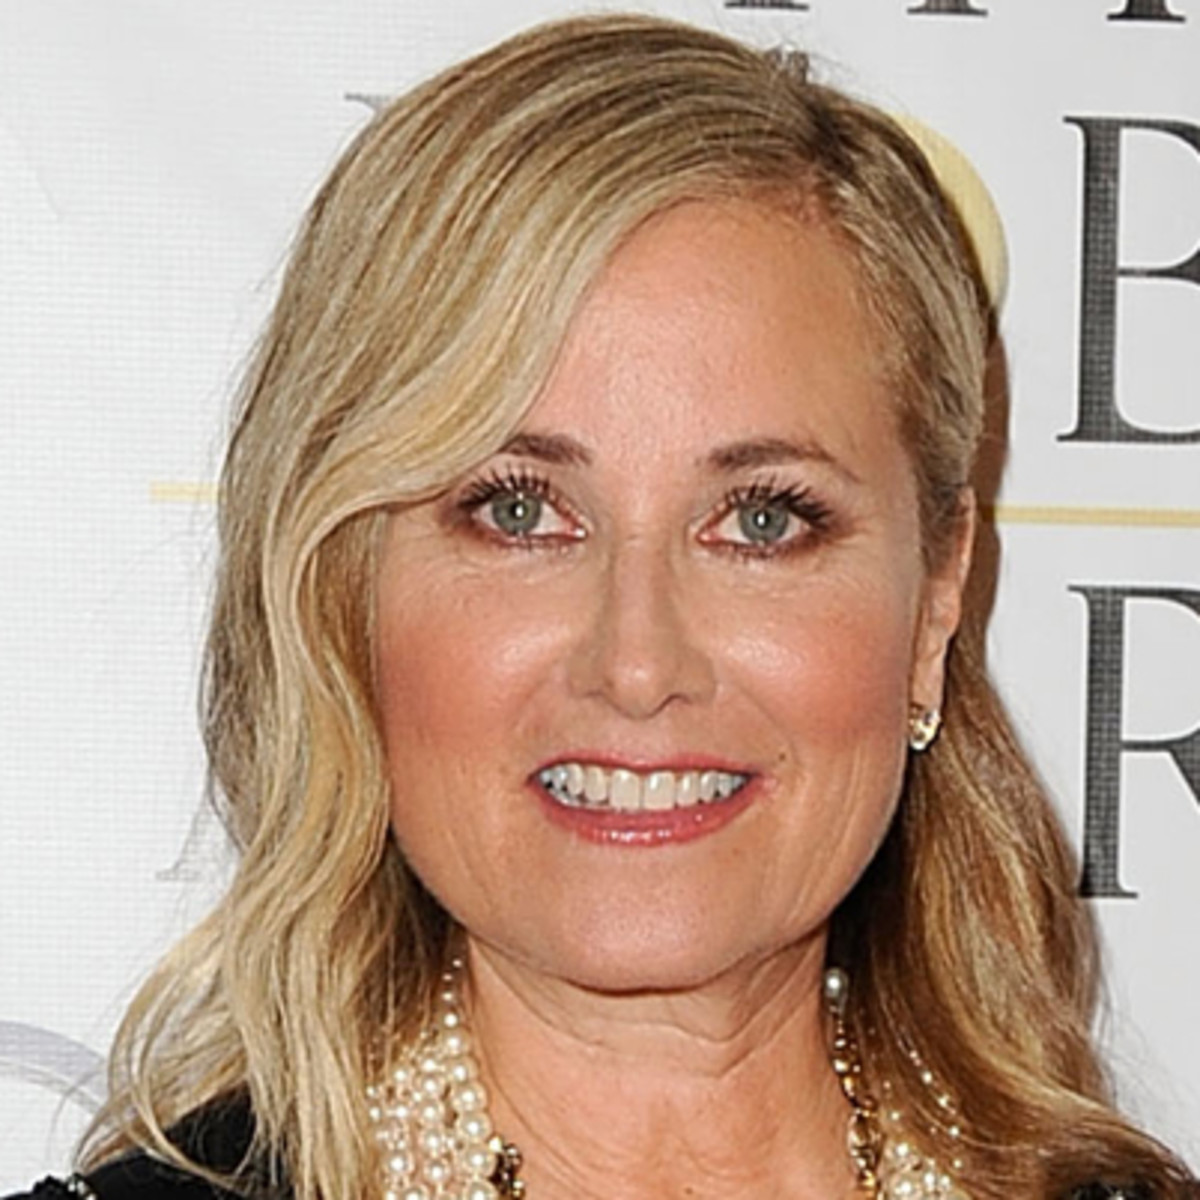 Tom Brady Wallpaper Quote Maureen Mccormick Reality Television Star Actress